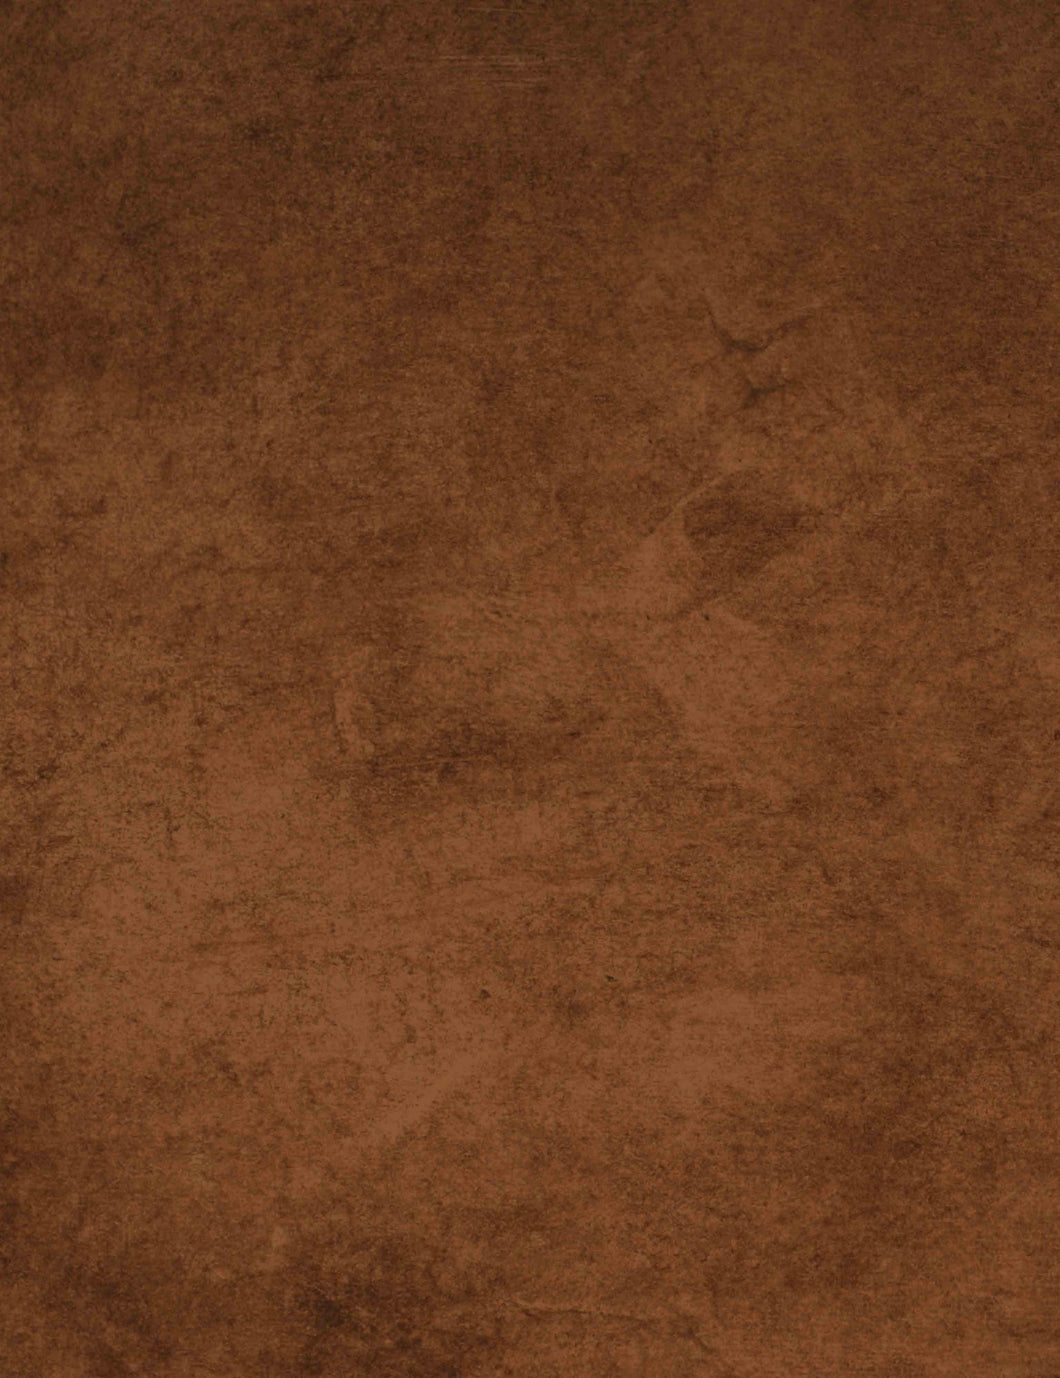 Printed Old Master Light Brown Texture Nearly Solid Backdrop